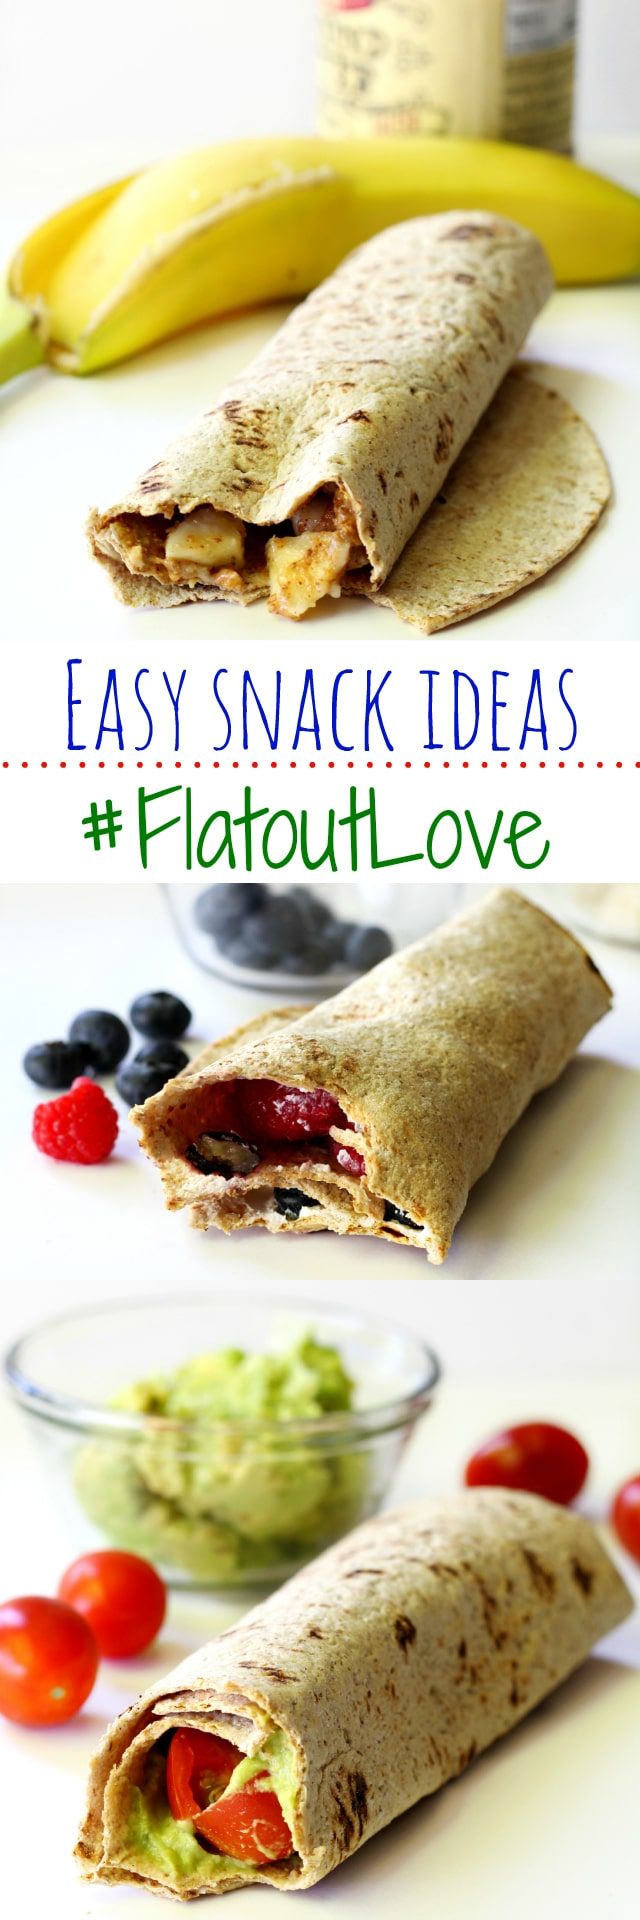 Easy Snack Ideas with Flatout